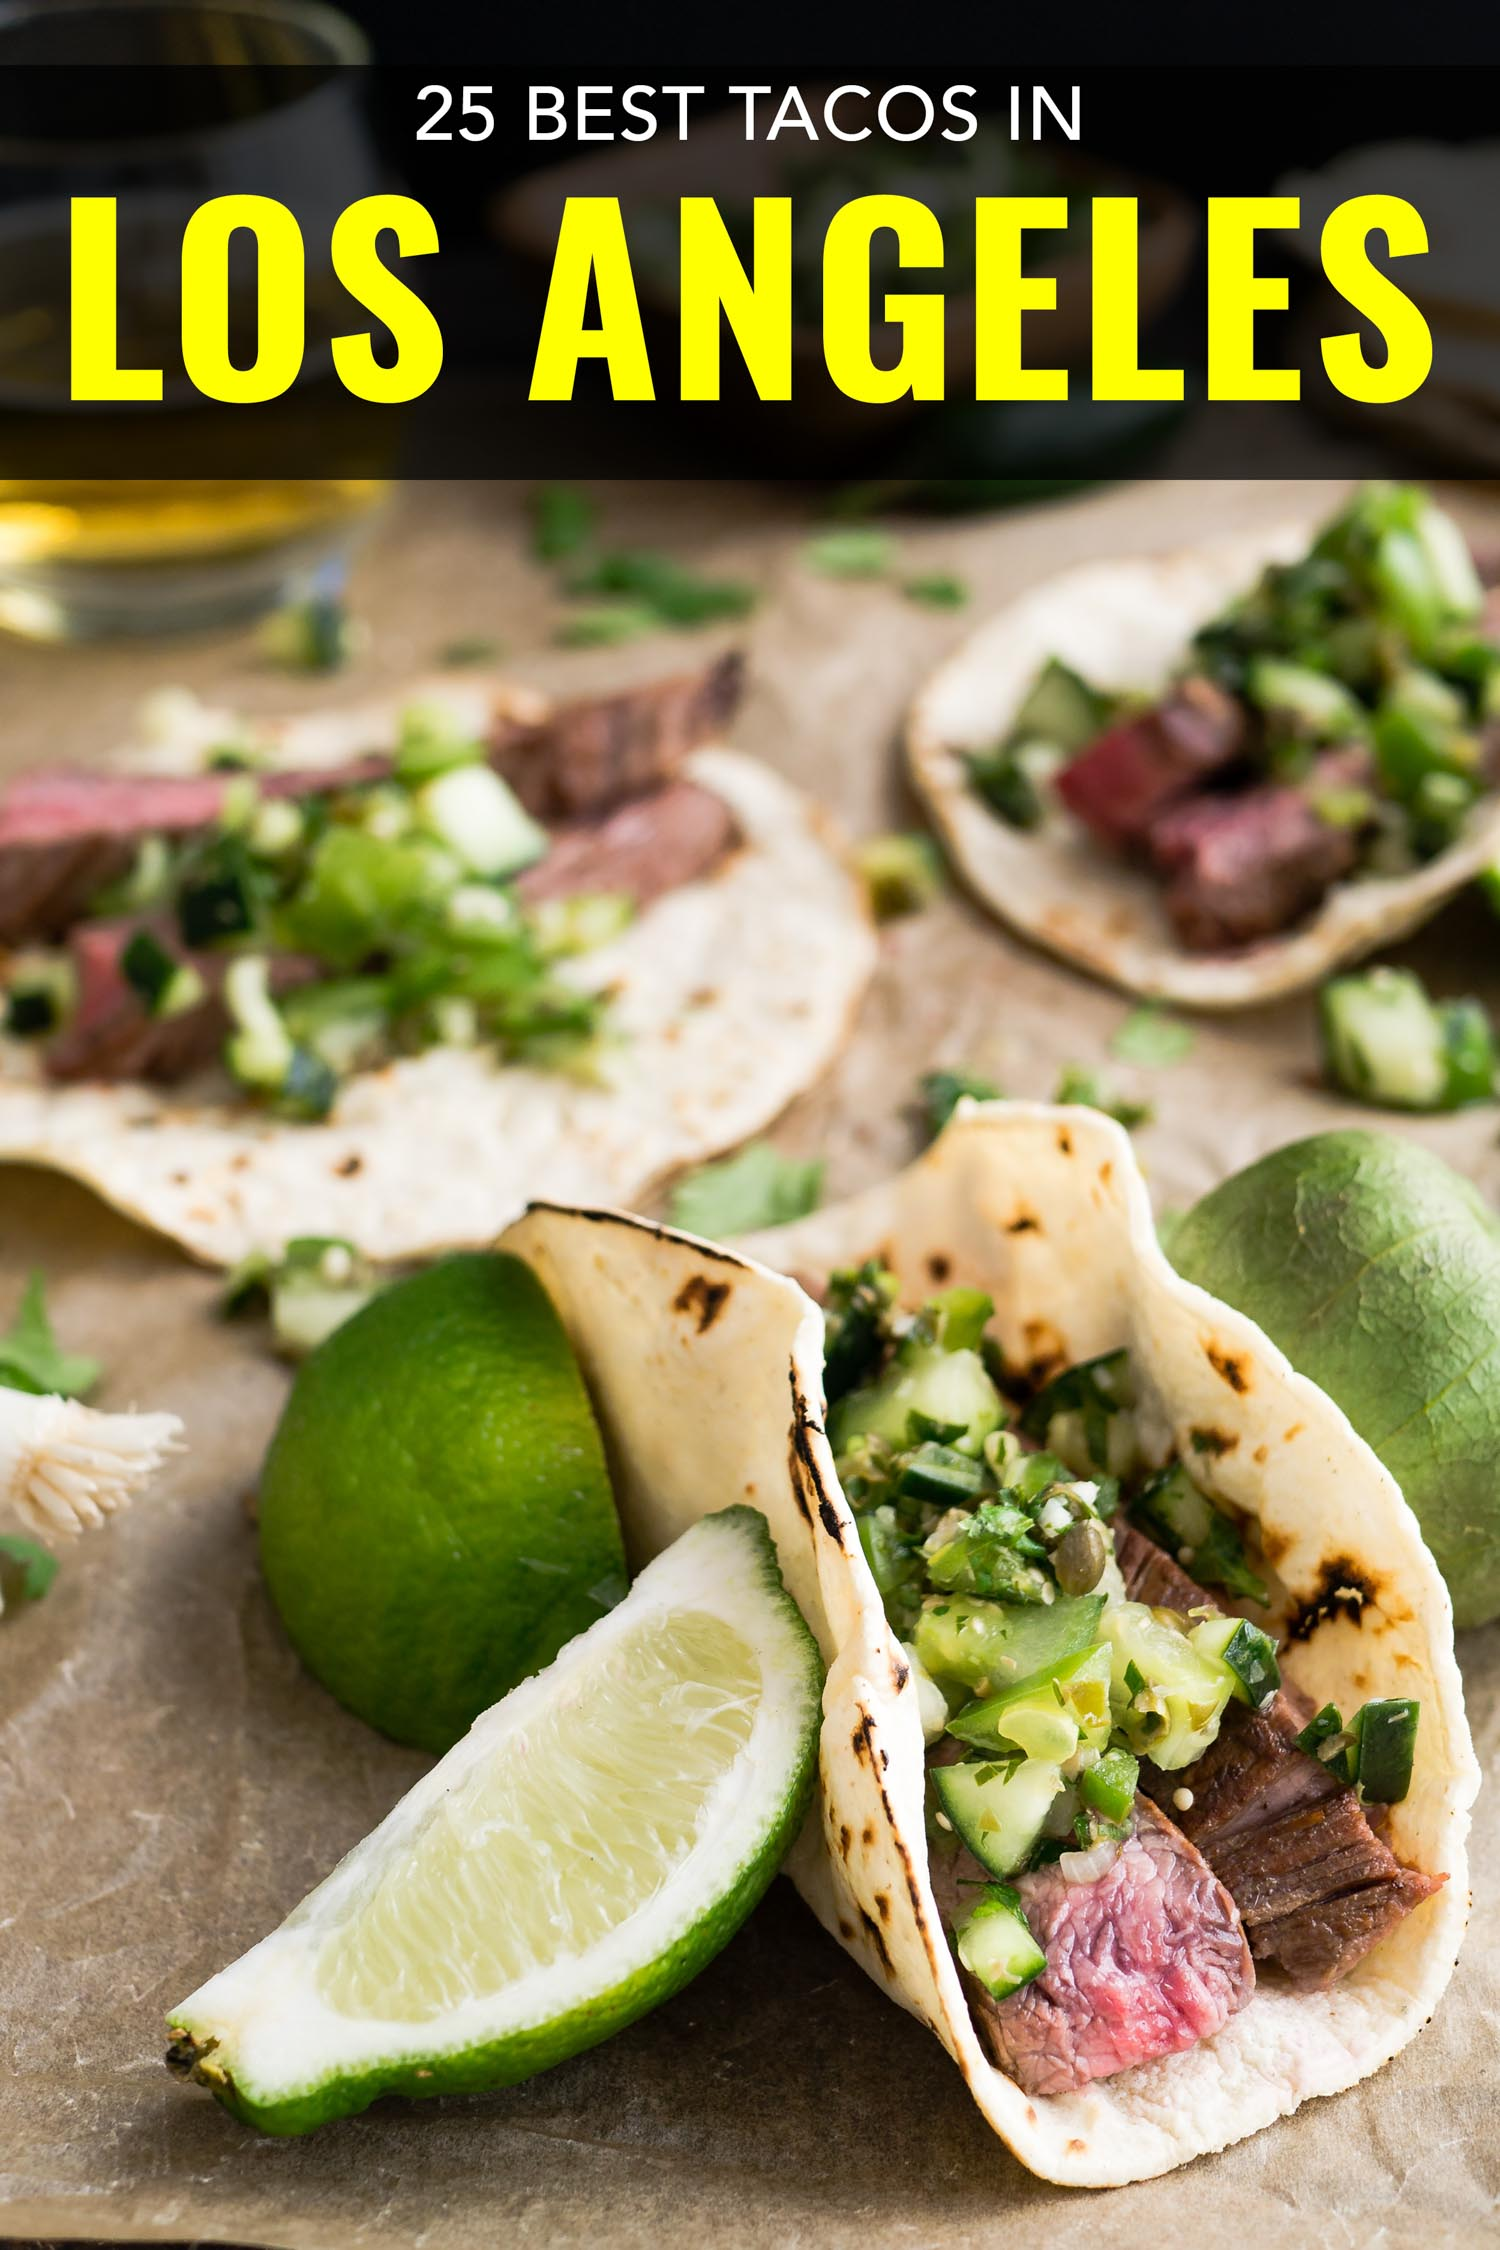 Los Angeles tacos on a cutting board with limes